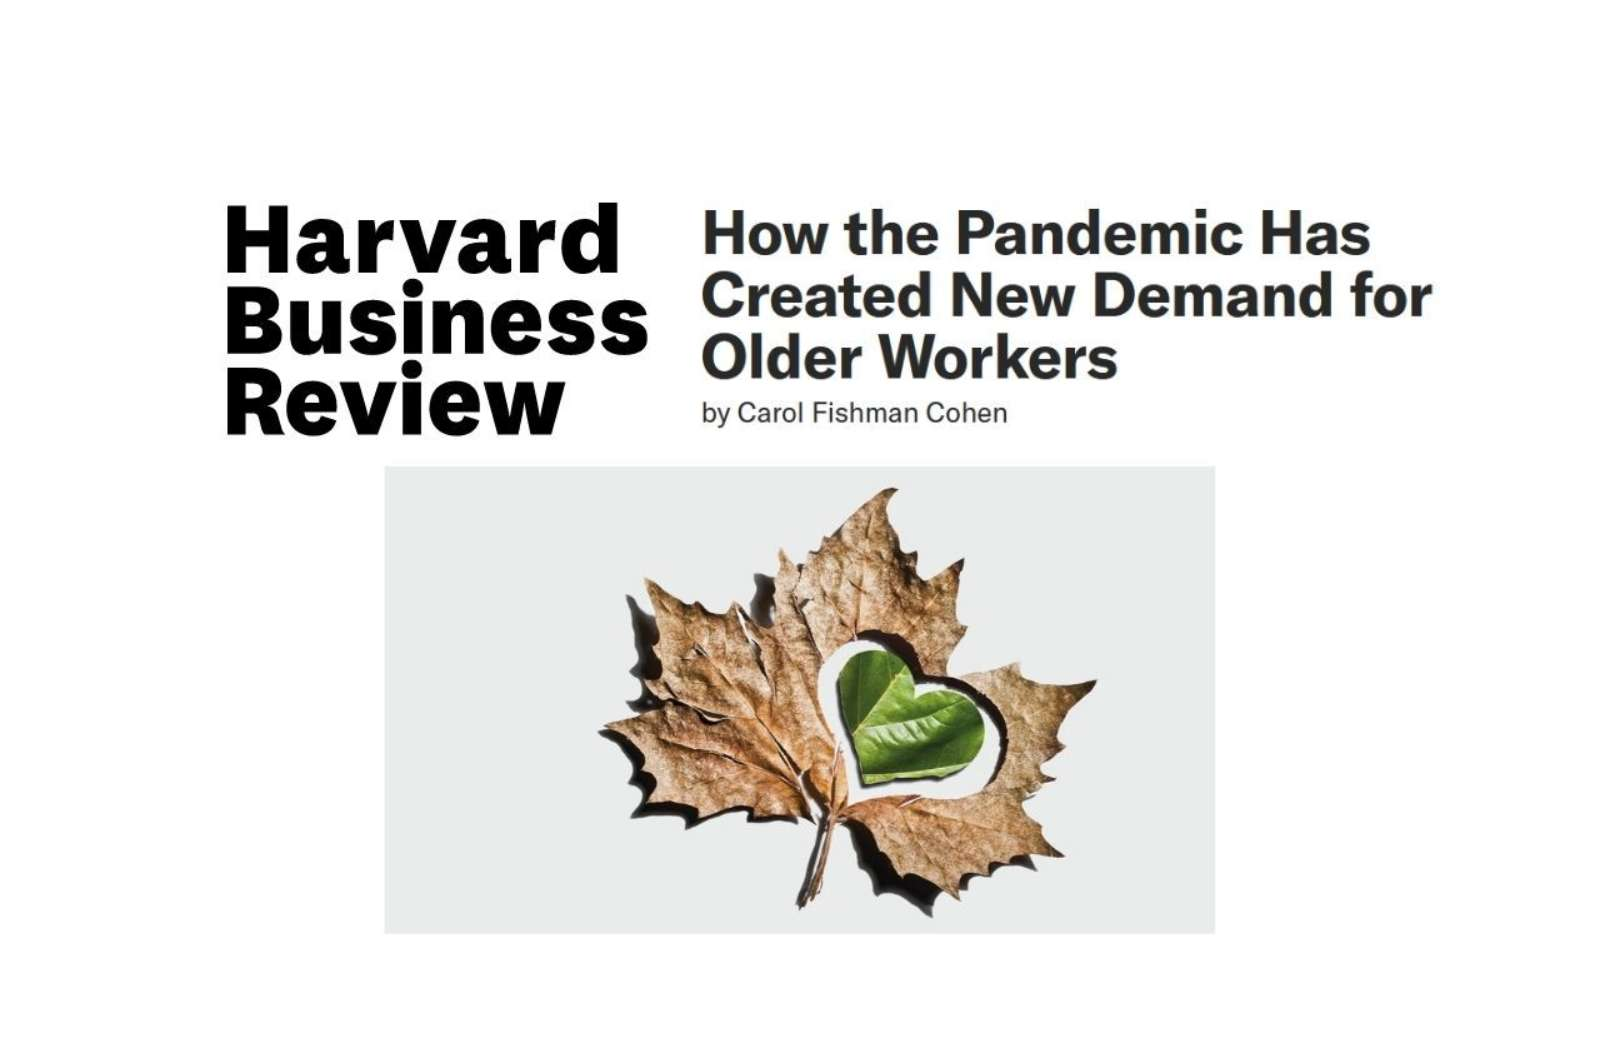 Hbr how the pandemic has created new demand for older workers news thumbnail